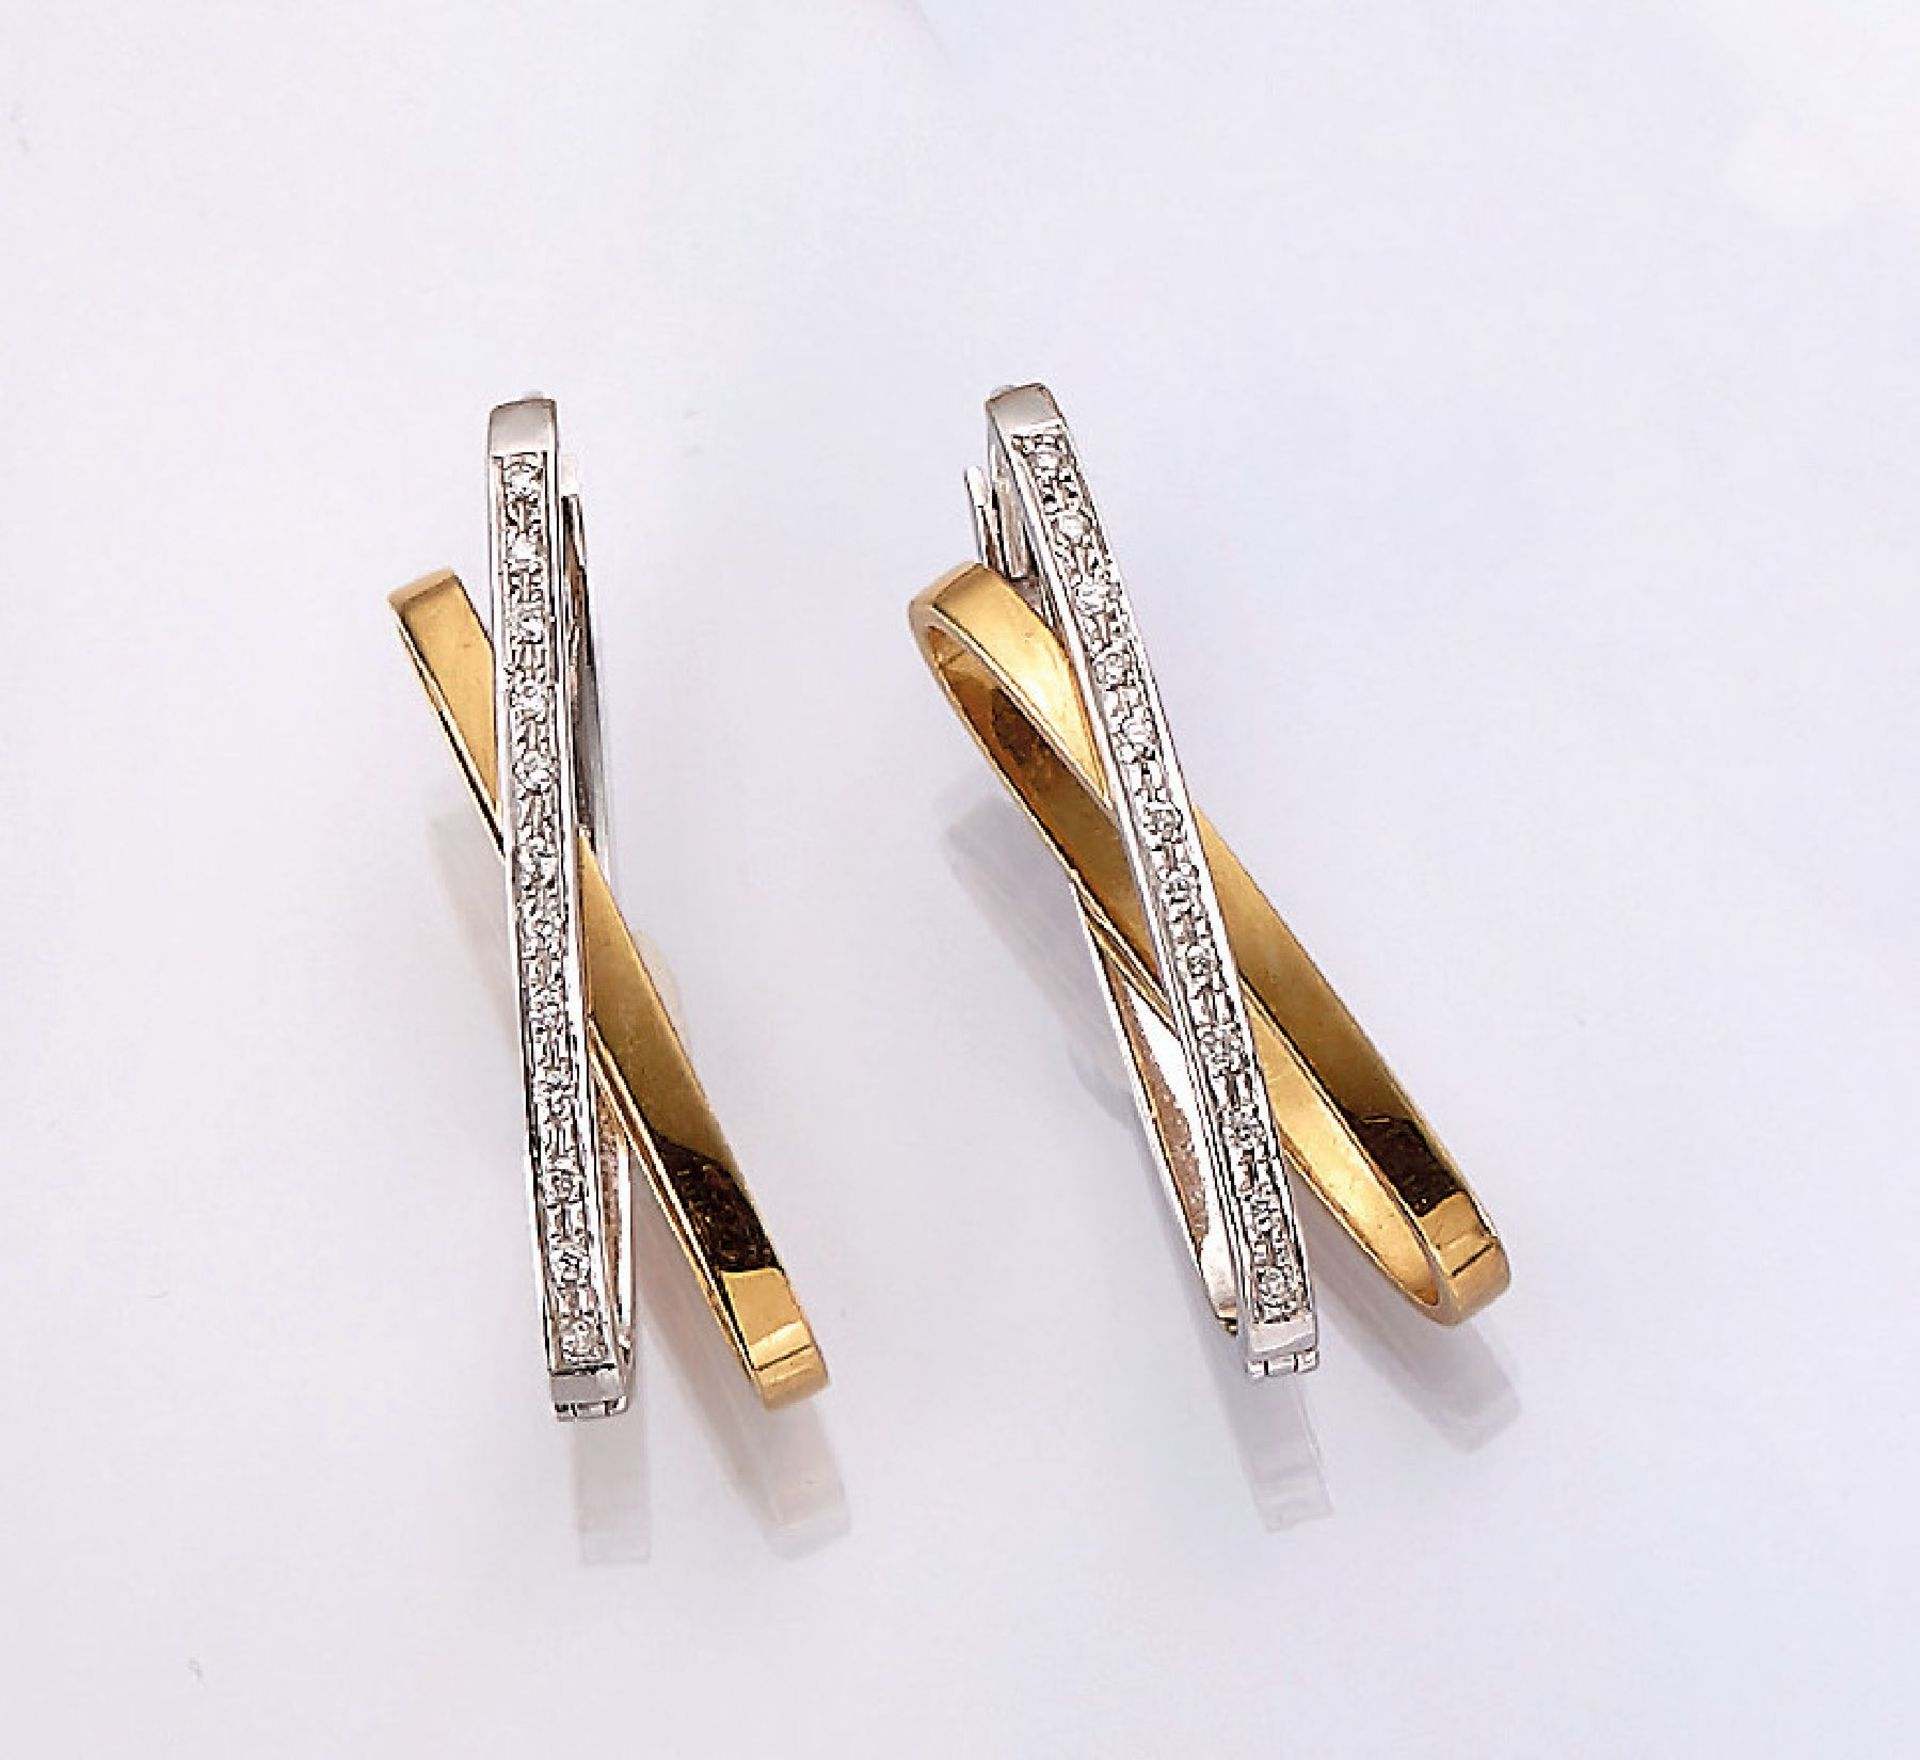 Los 31530 - Pair of 18 kt gold earrings with brilliants , YG/WG 750/000, 2 intertwined rings with brilliants